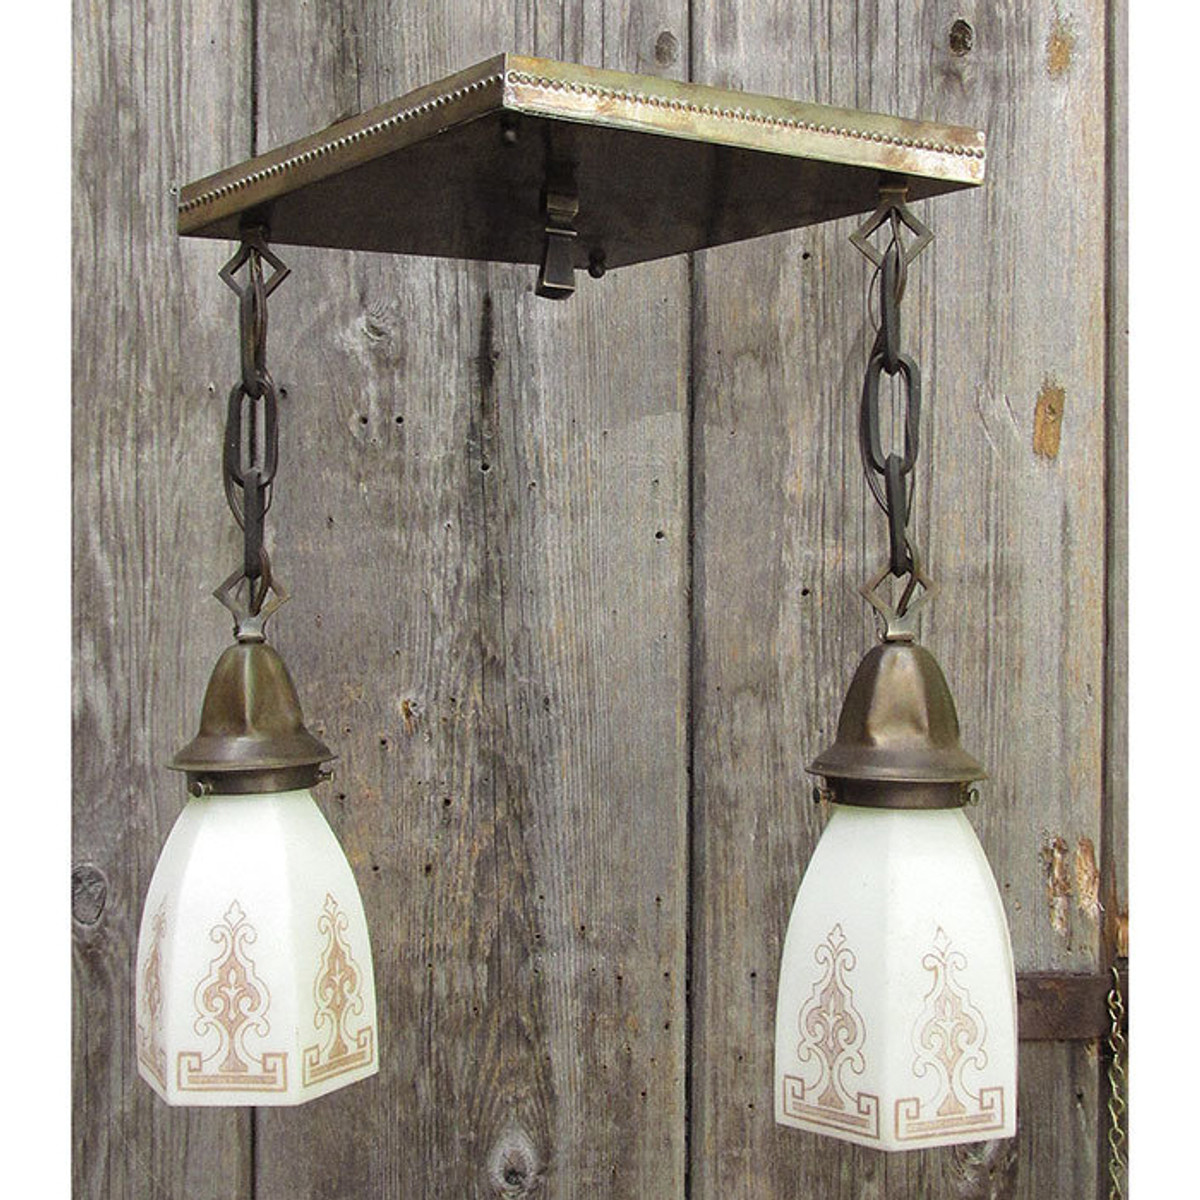 609503 - Antique Arts and Crafts Two Light Ceiling Fixture